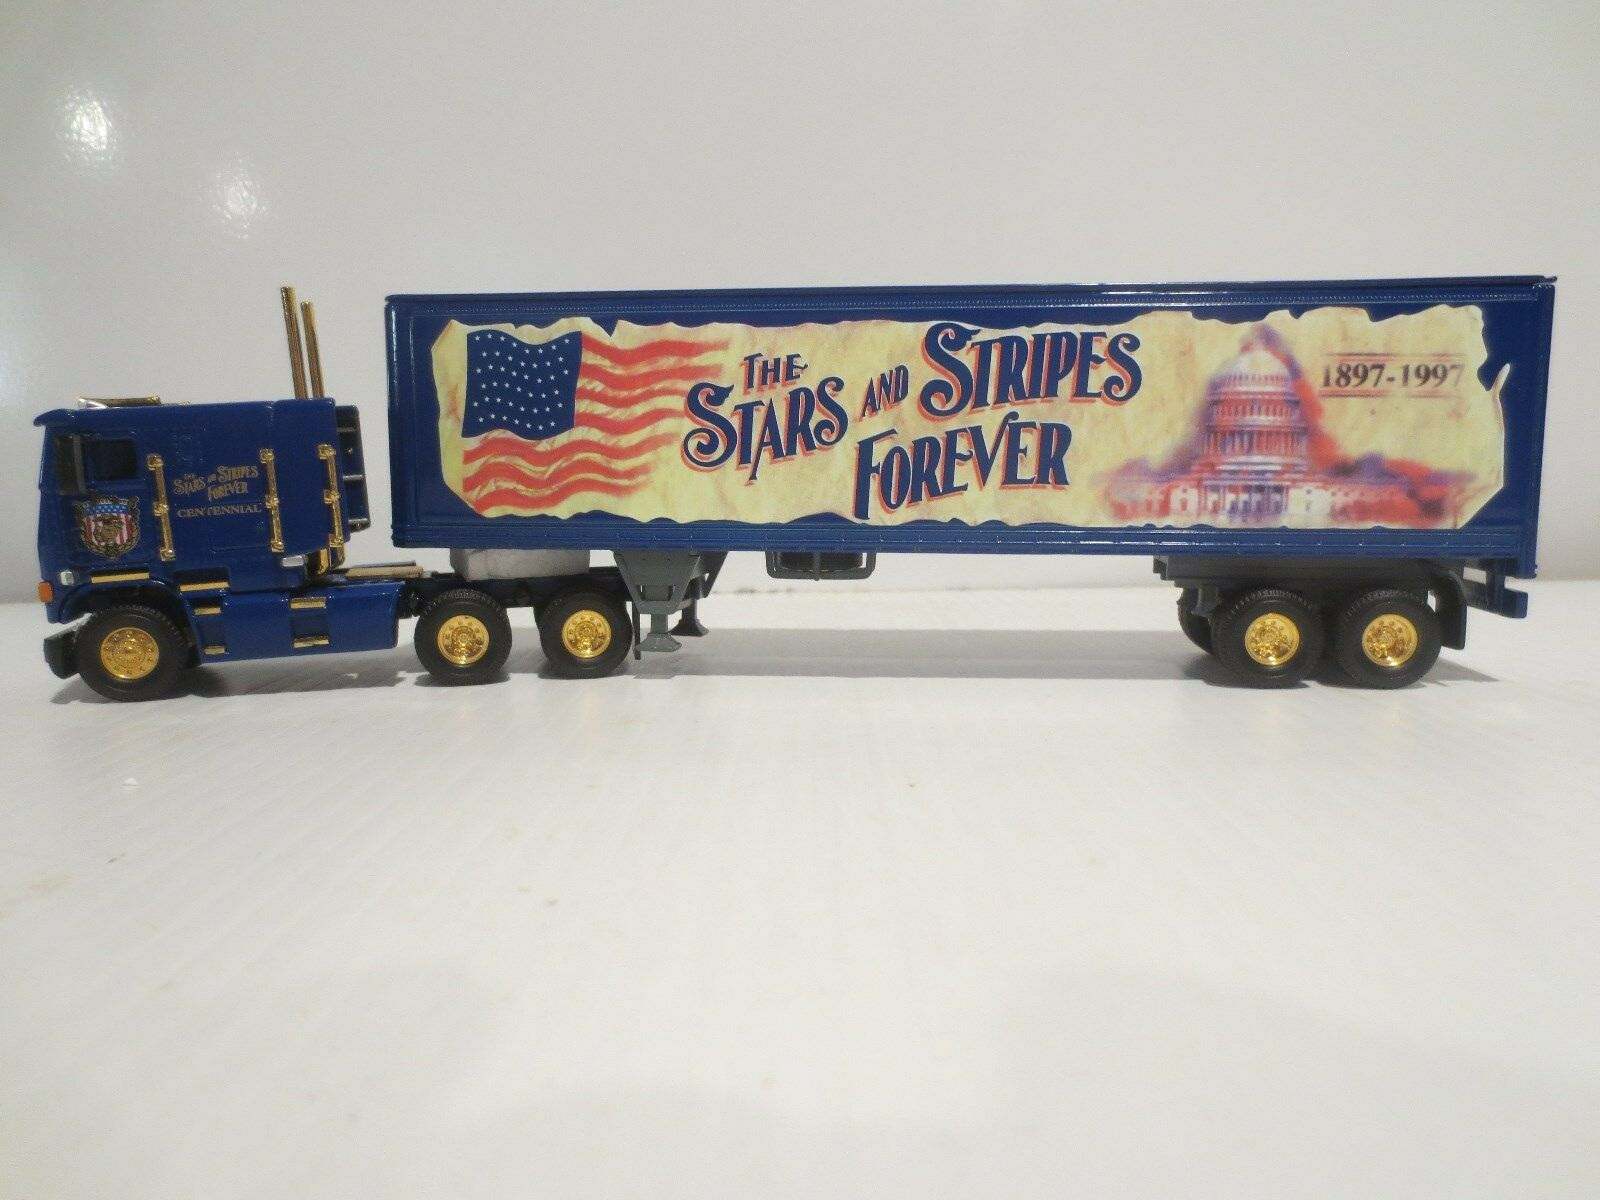 Matchbox Edición Limitada Stars & Stripes 100th aniversario 1 58 camión Perfecto